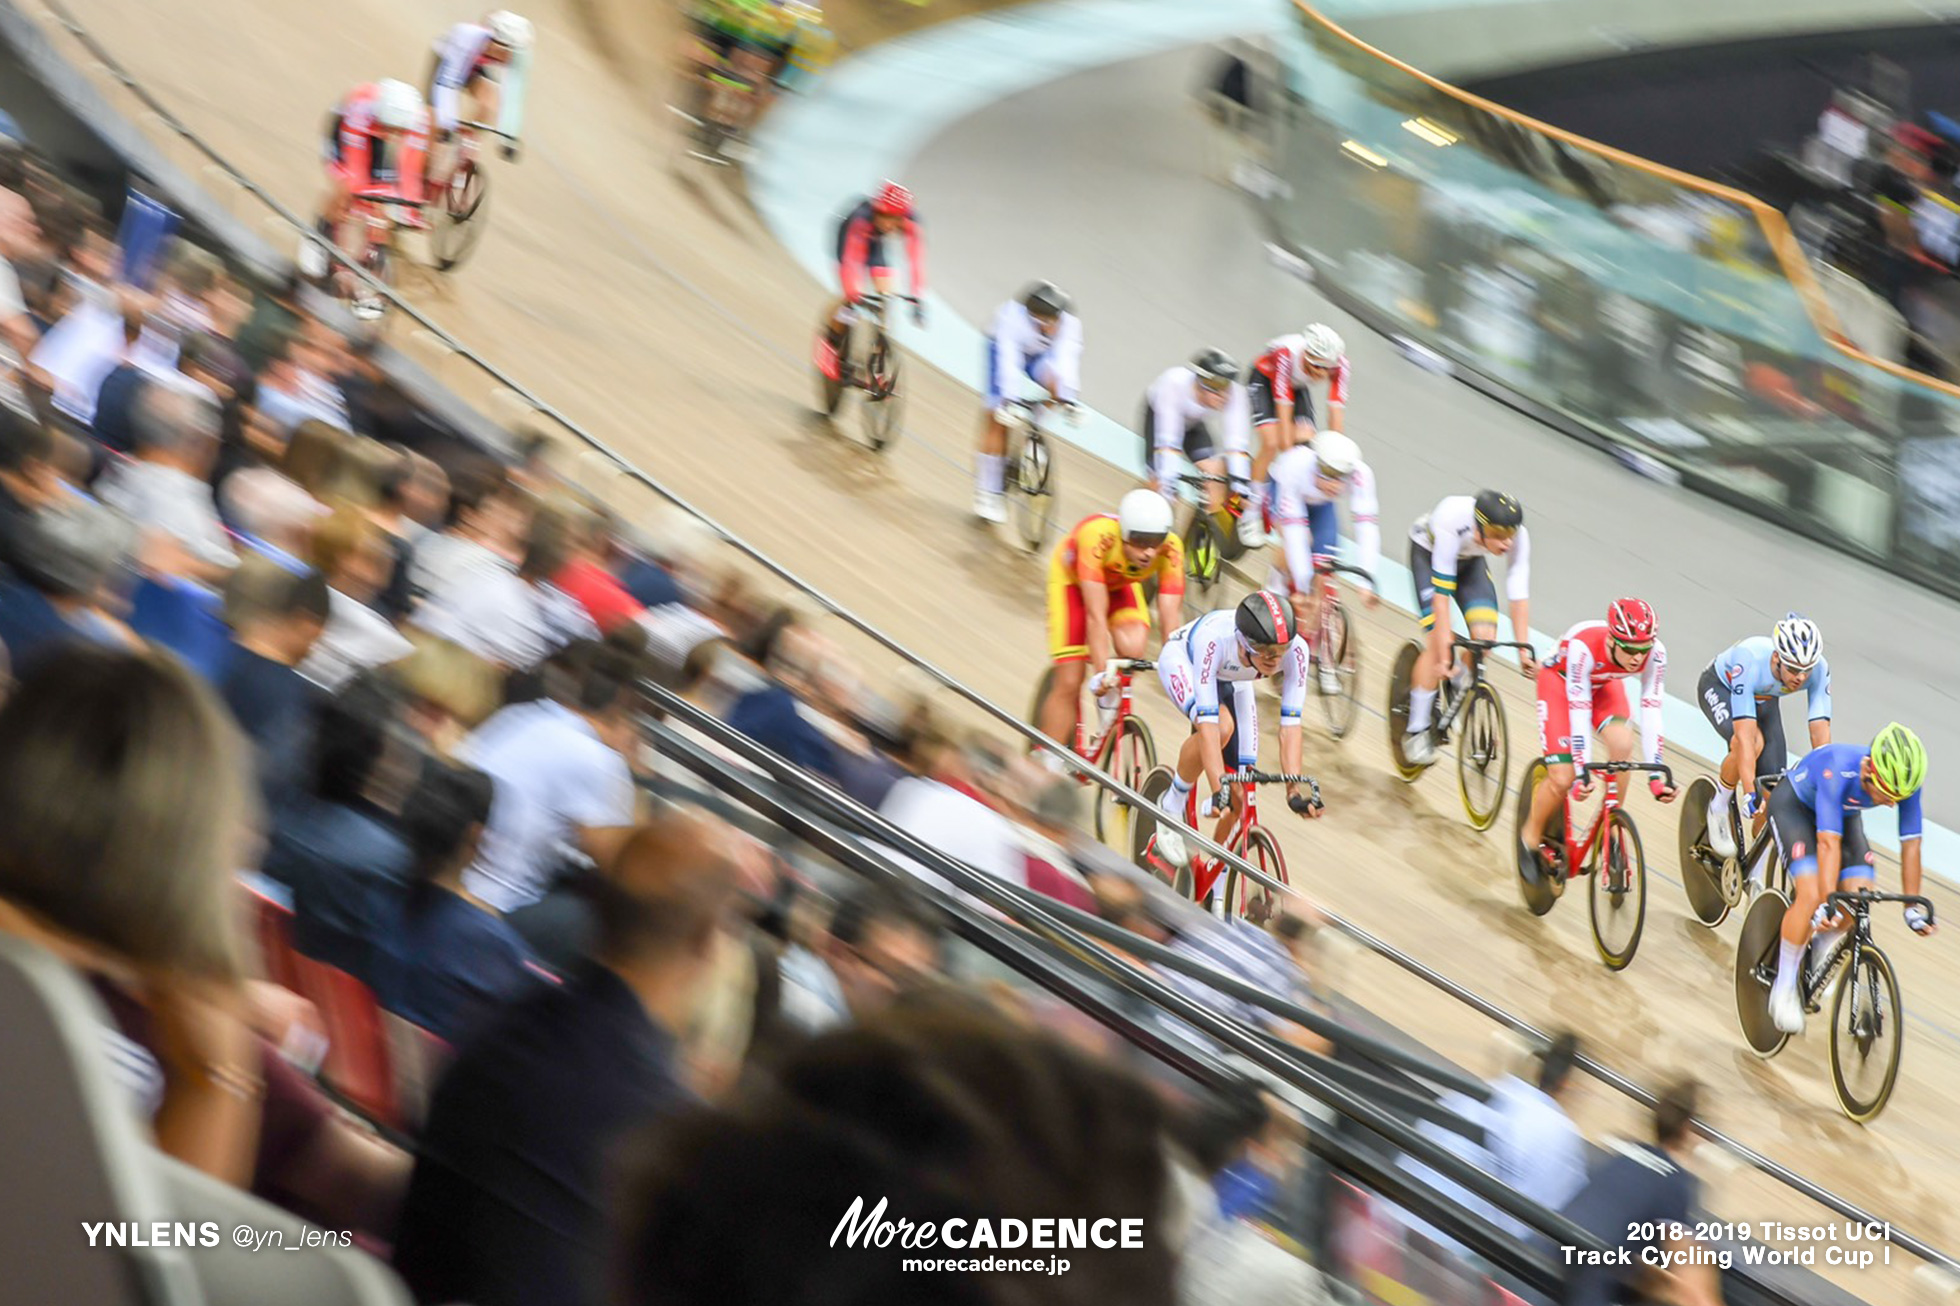 2018-2019 TRACK CYCLING WORLD CUP I Men's Point Race